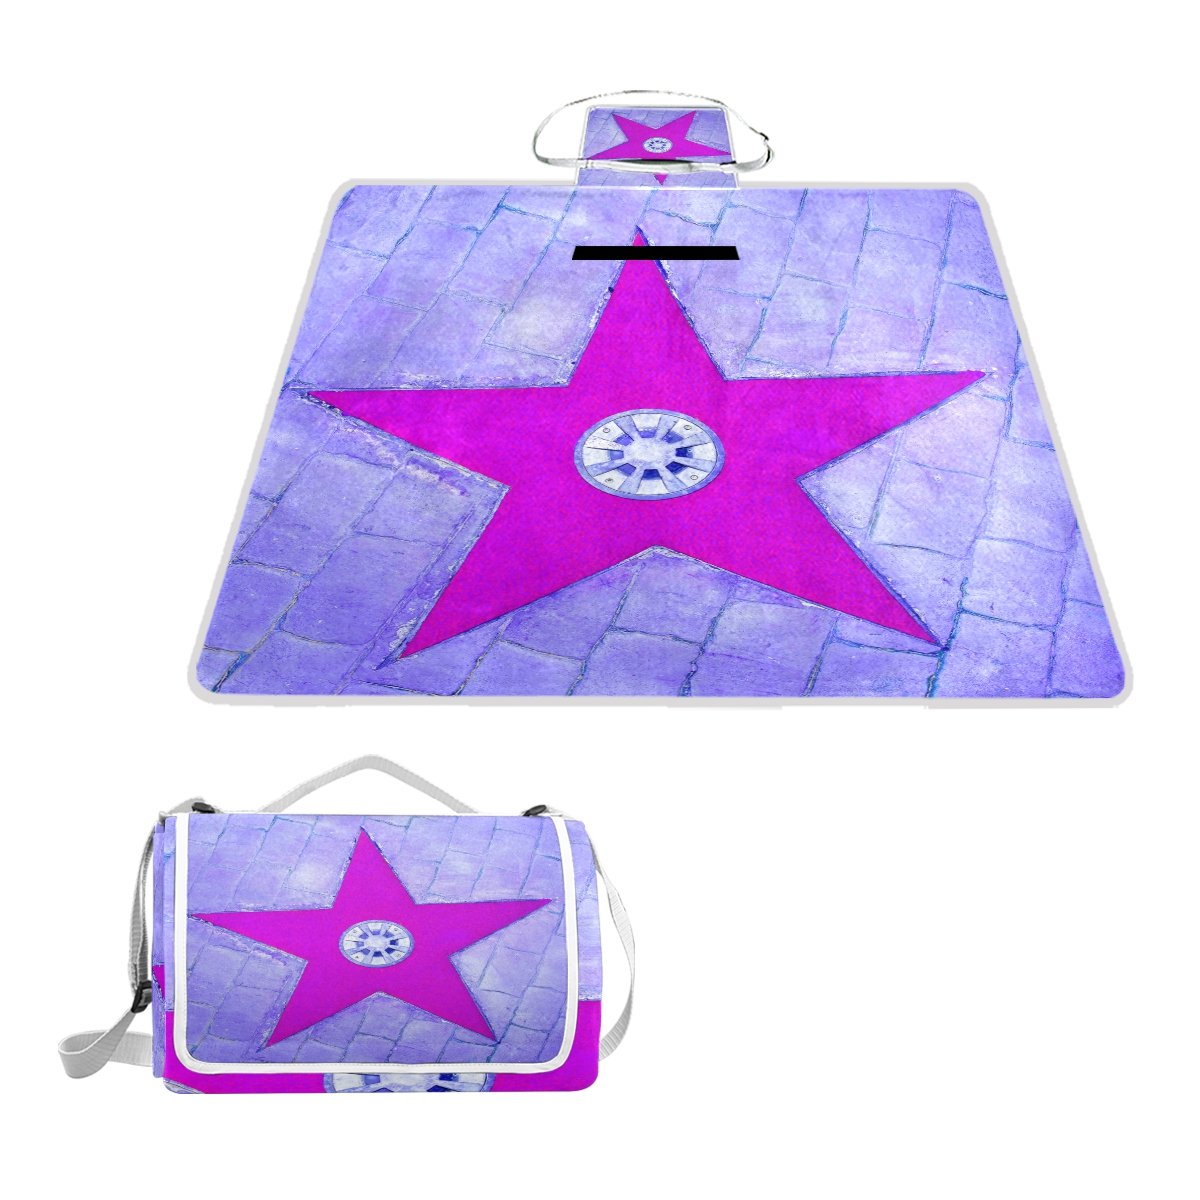 Yomole Light Purple Star Picnic Mat, Waterproof Pads Large Portable Blanket Tote Folding Rug for Beach, Camping, Park, Excursion by Yomole